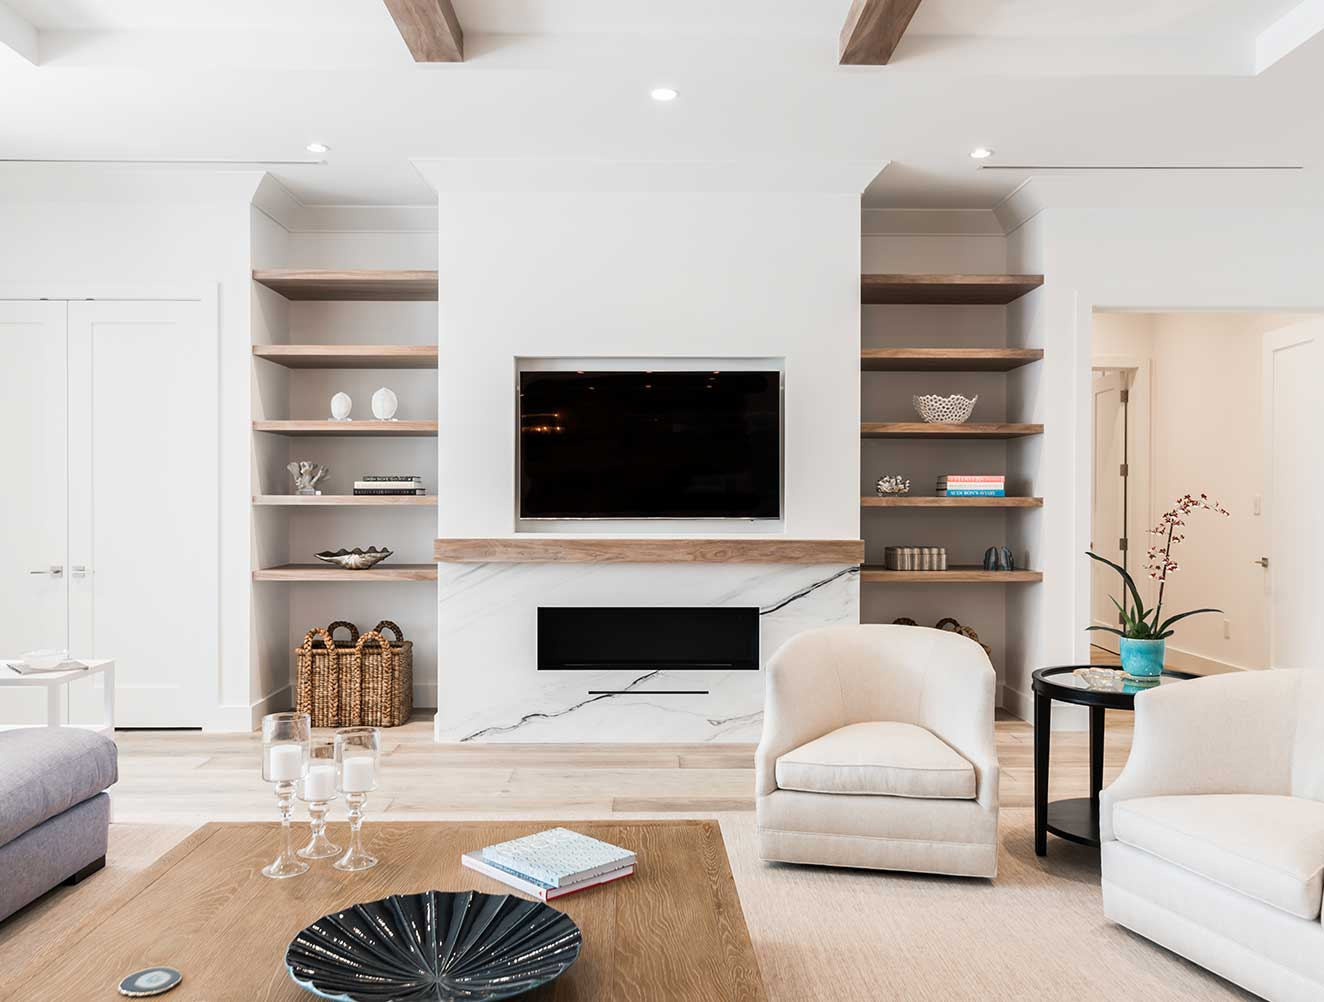 Living Room with Custom Built-ins at 10th Ave S. Residence in Naples Florida, single family home designed by Kukk Architecture & Design Naples Architecture Firm